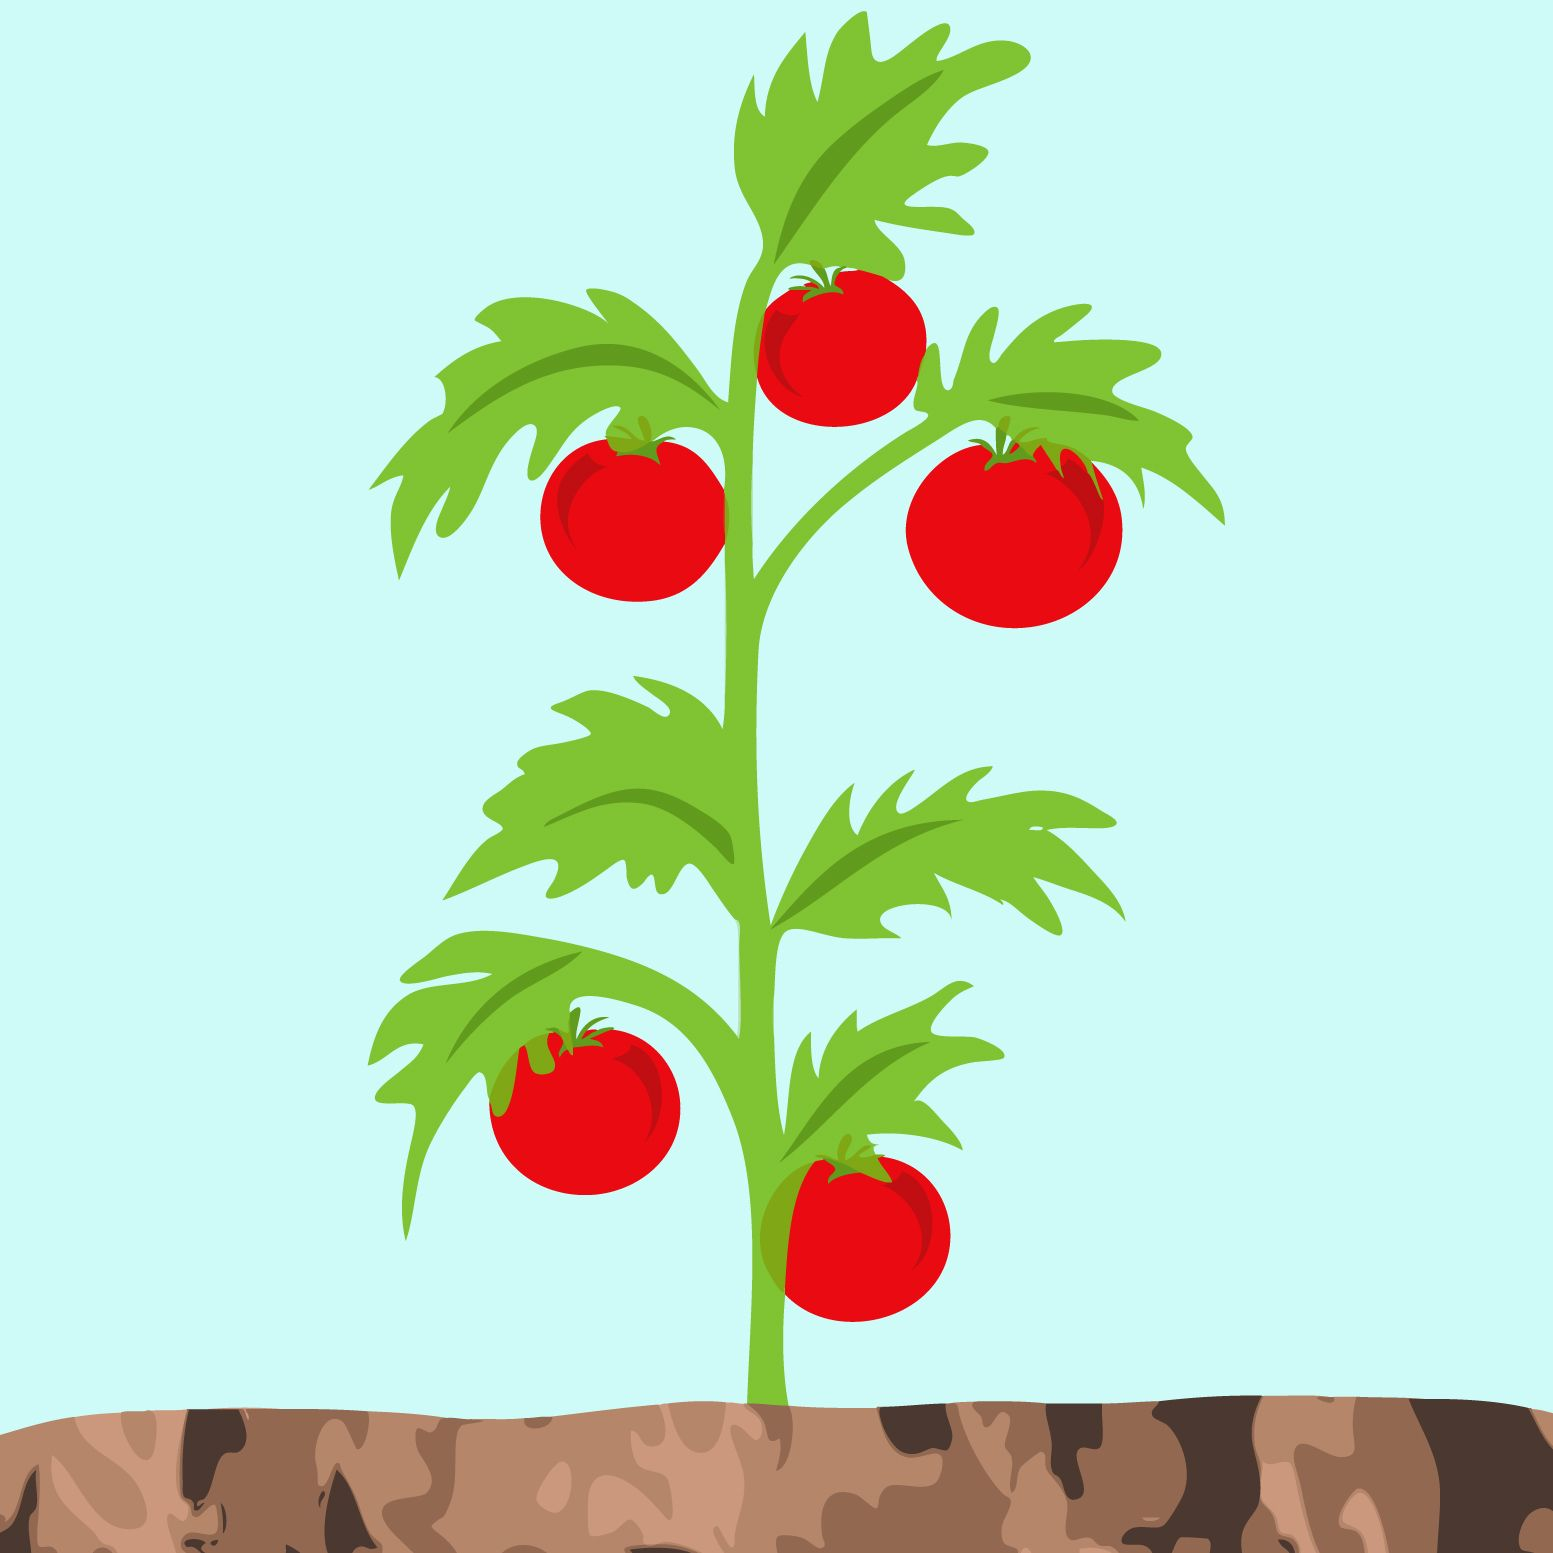 Tomato Plant Drawing At Free For Personal Use Prune Tomatoes Diagram Of 1553x1553 Image Result Illustration